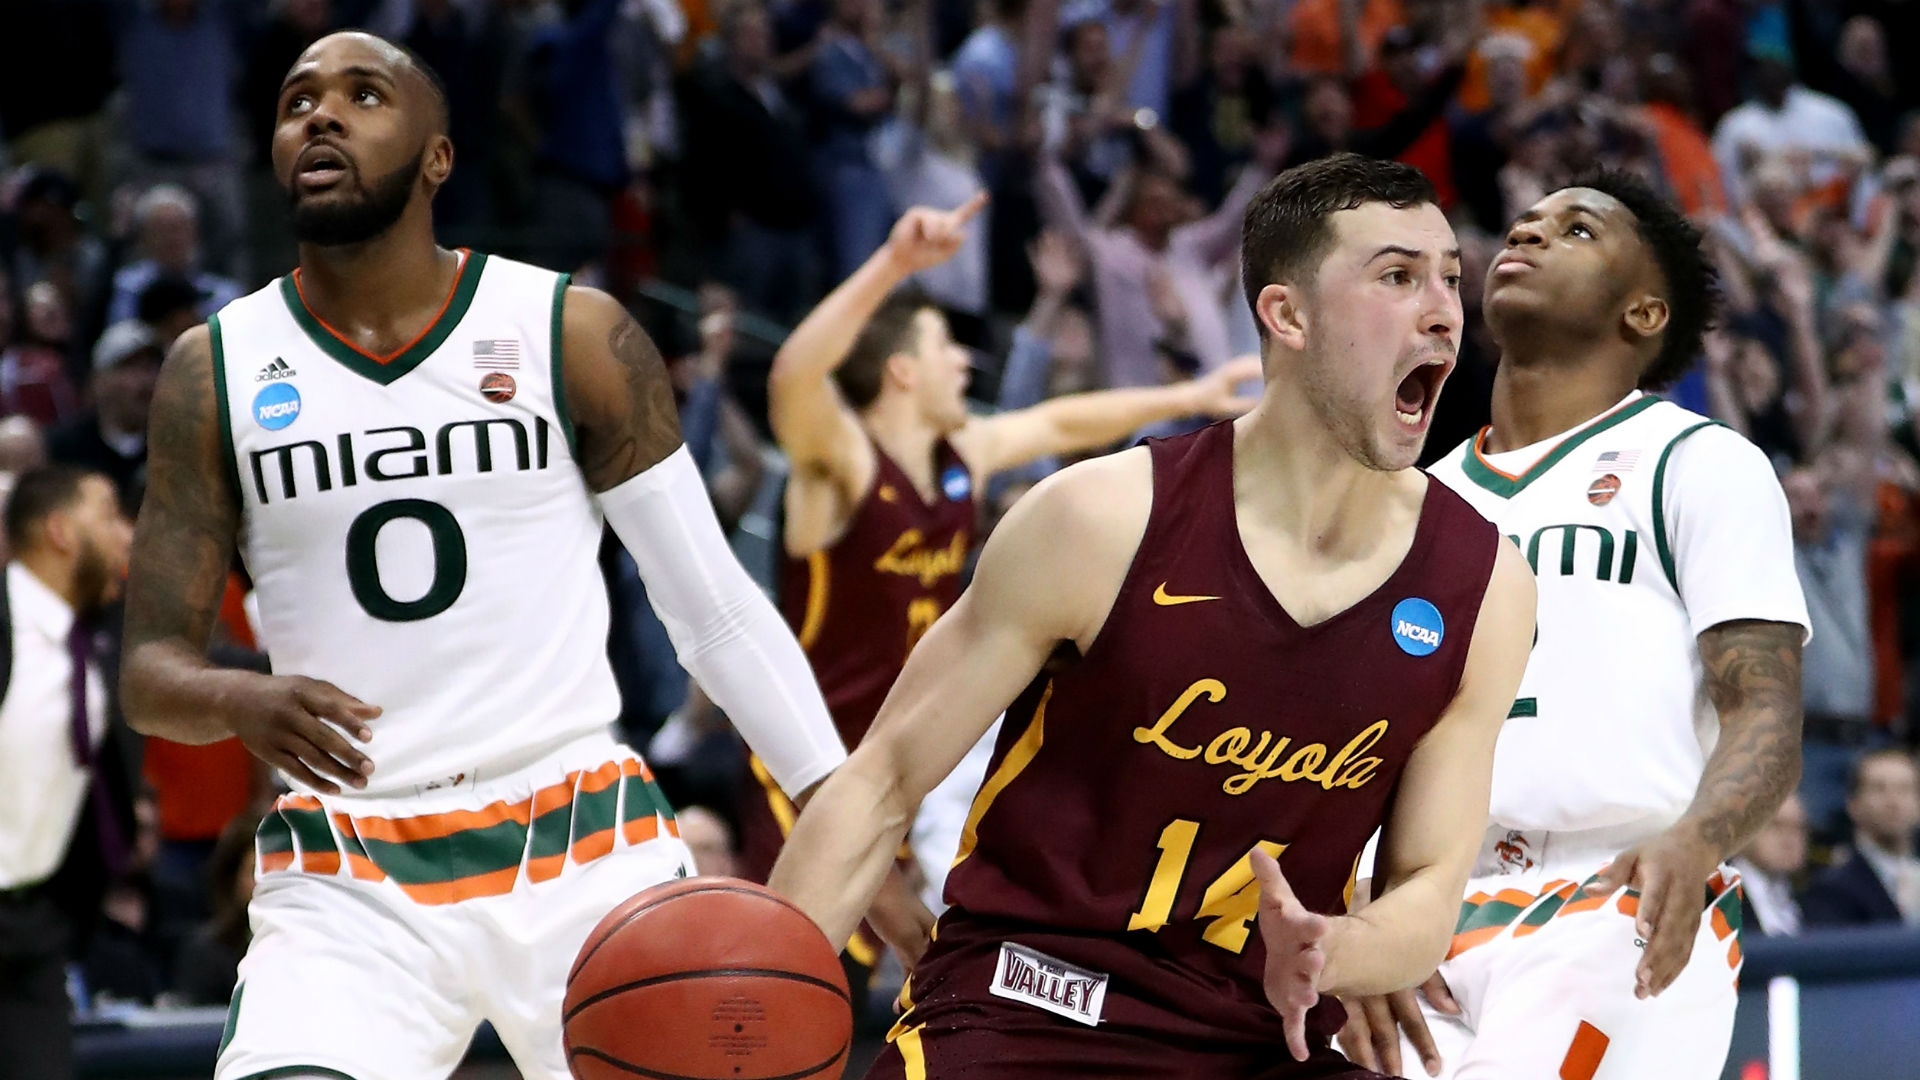 Men's basketball: Miami falls in NCAA Tournament